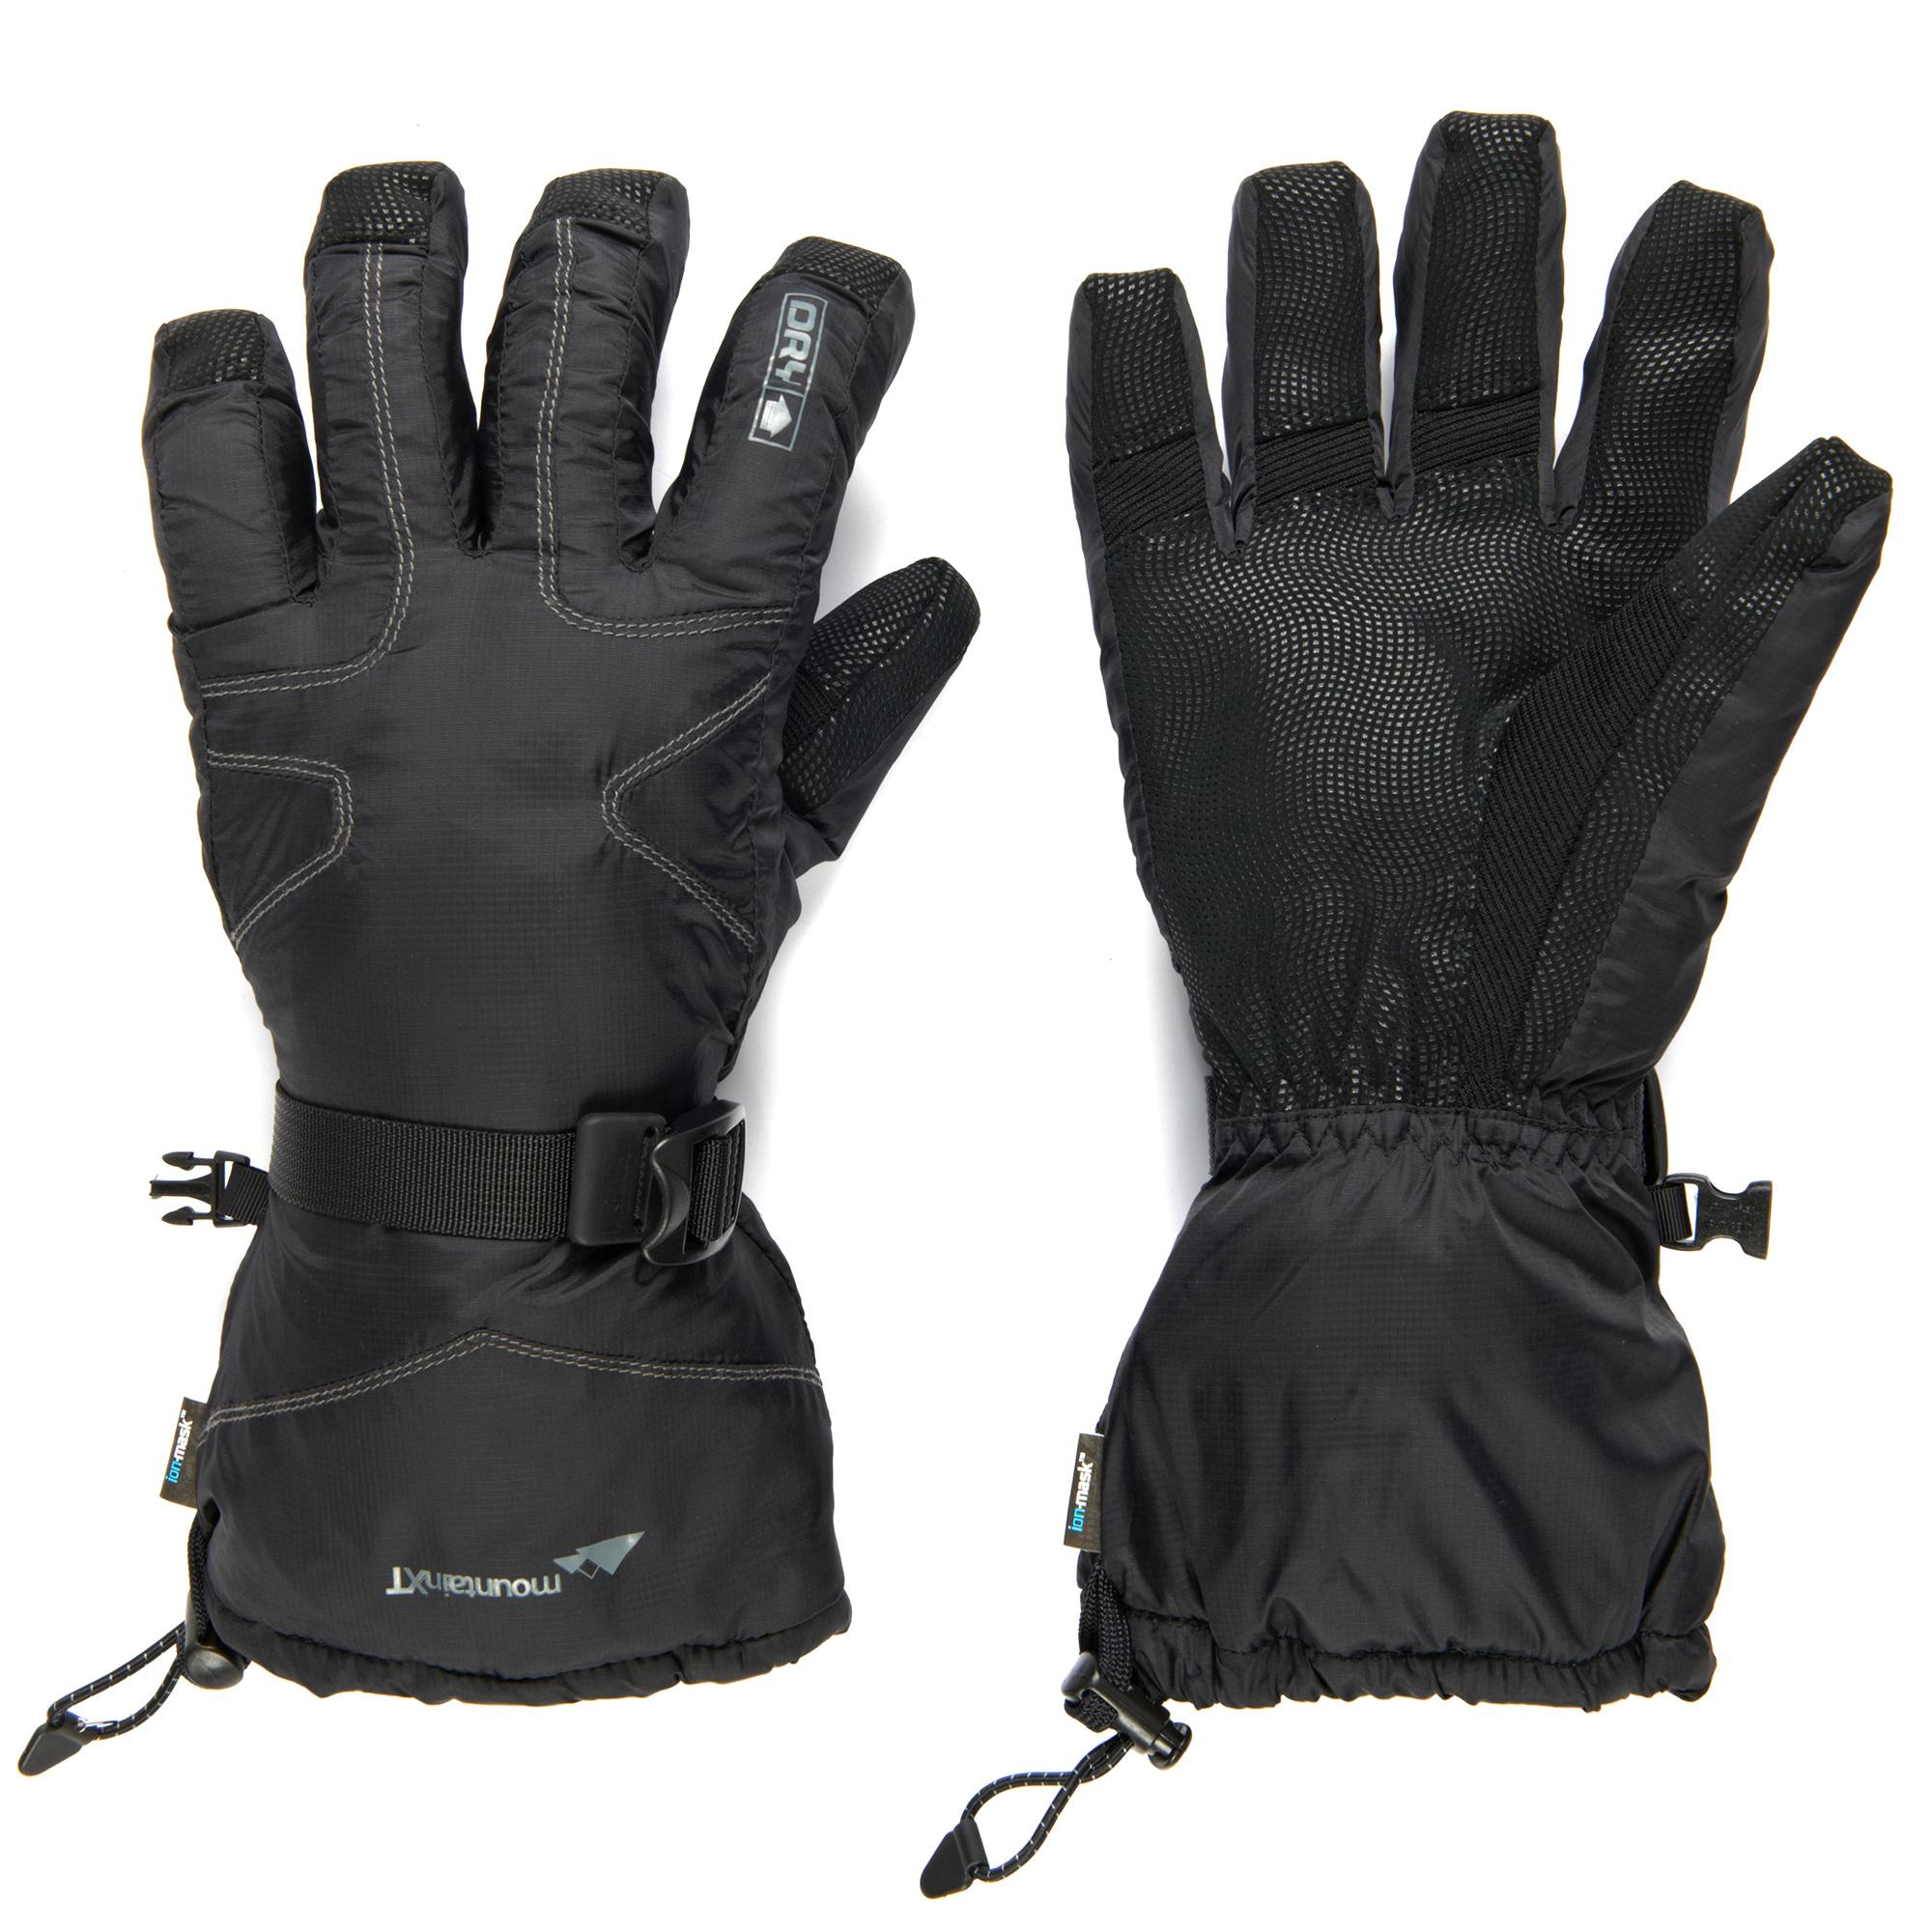 Trekmates Men's mountainXT DRY Snow Gloves, Black